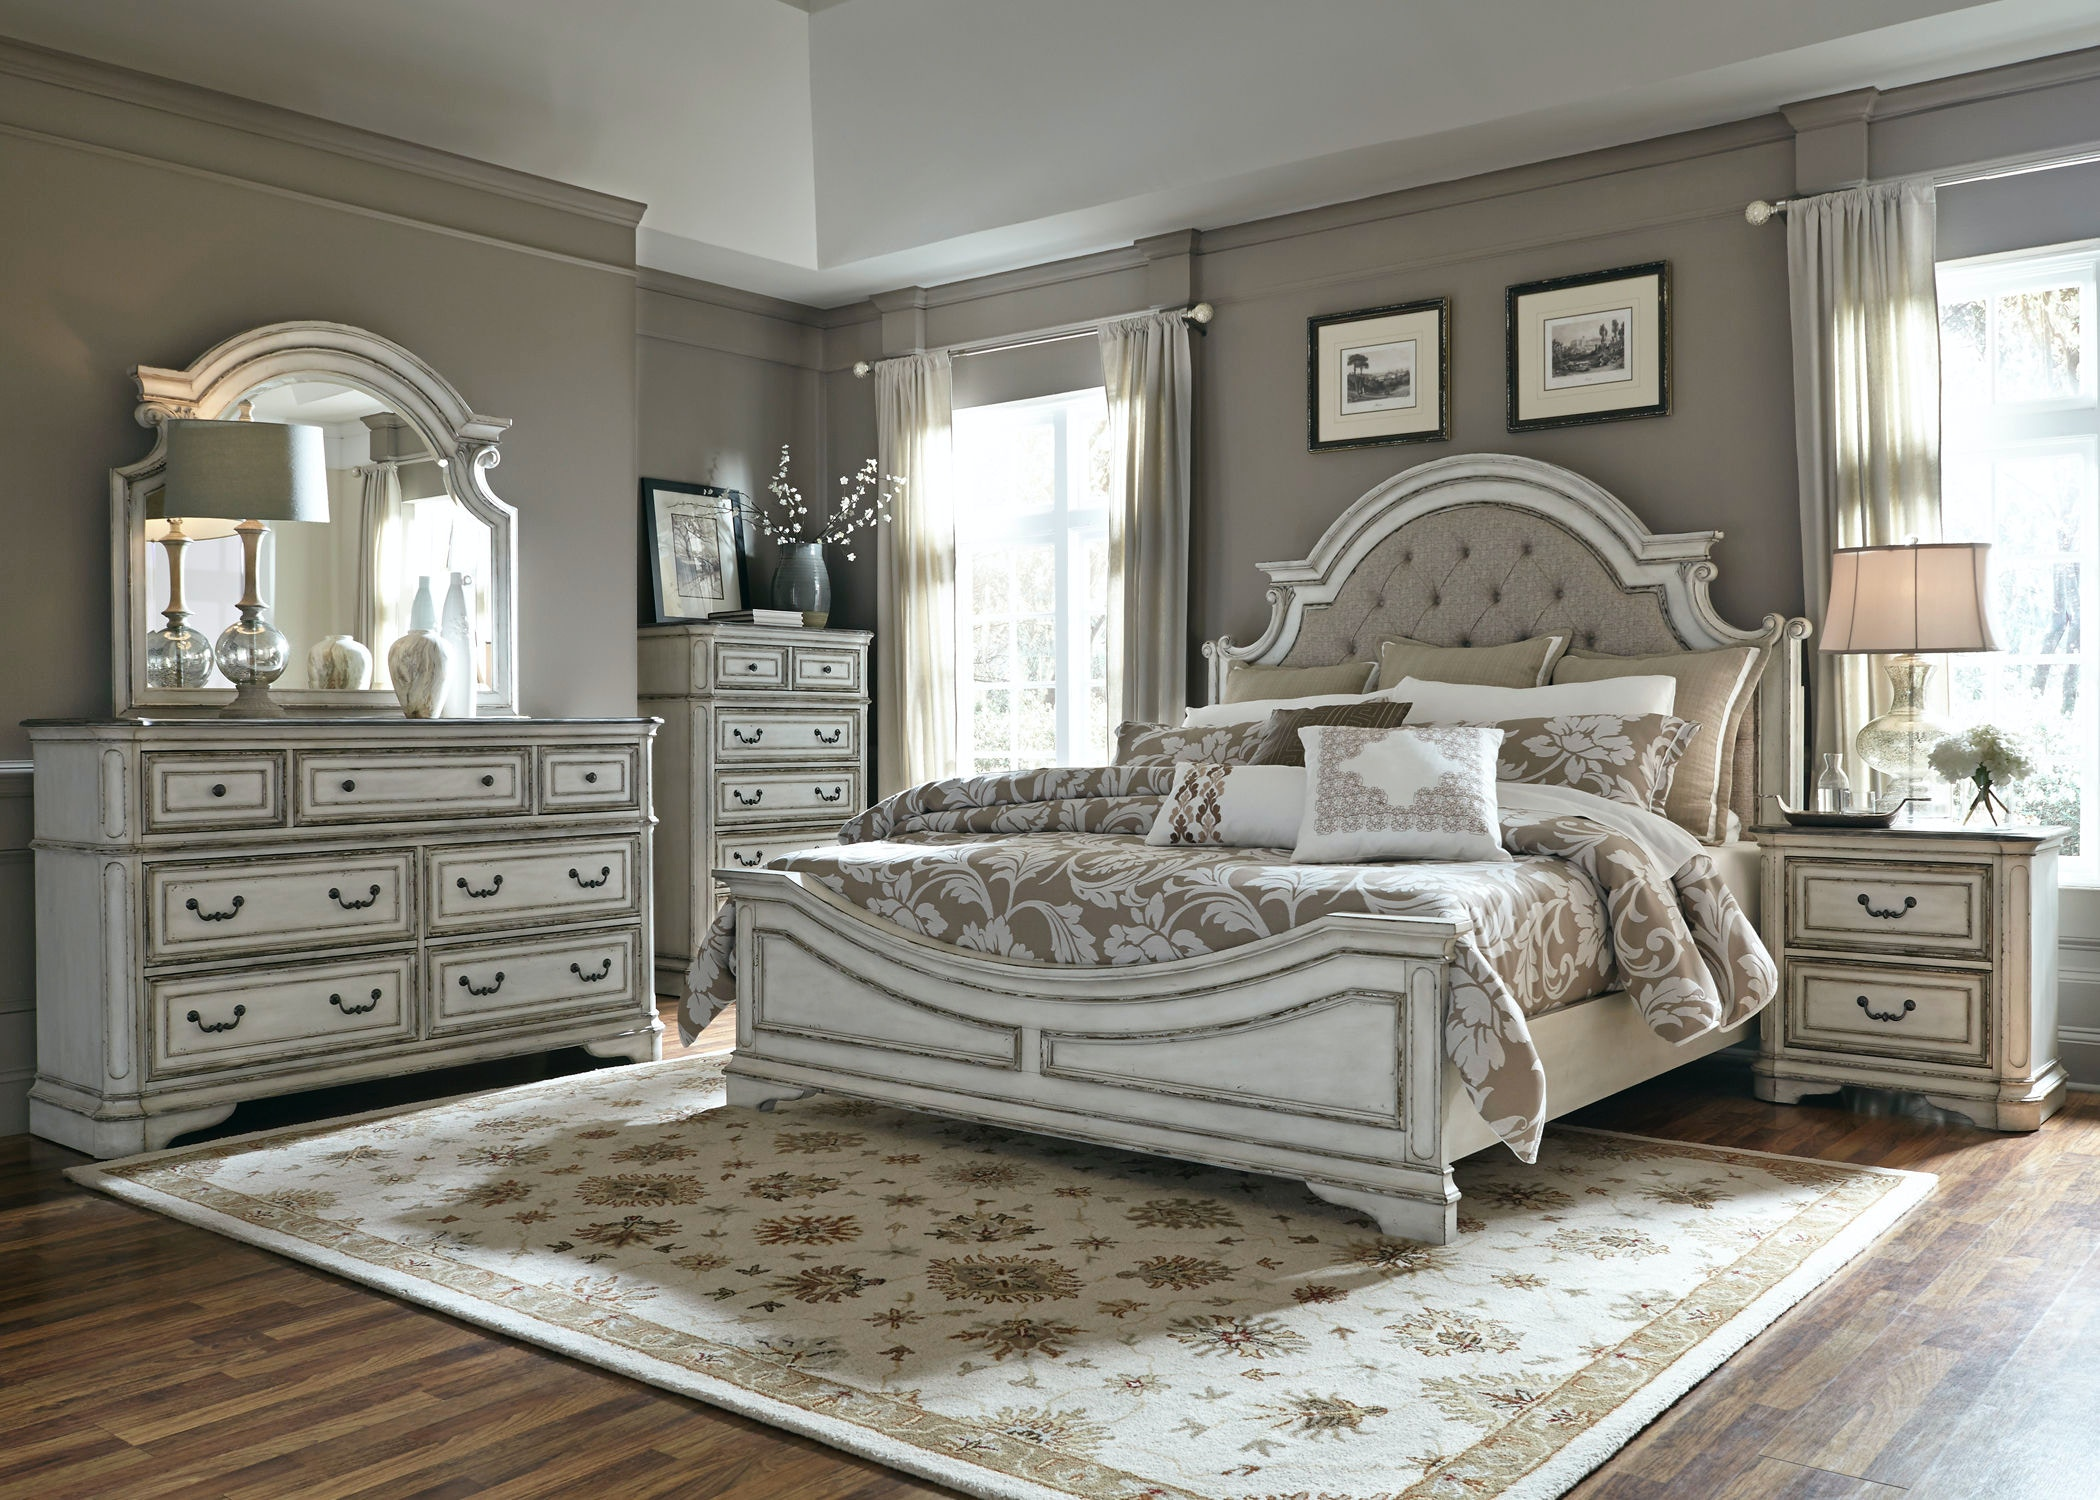 Liberty Furniture Bedroom King Uph Bed Dresser and Mirror Chest